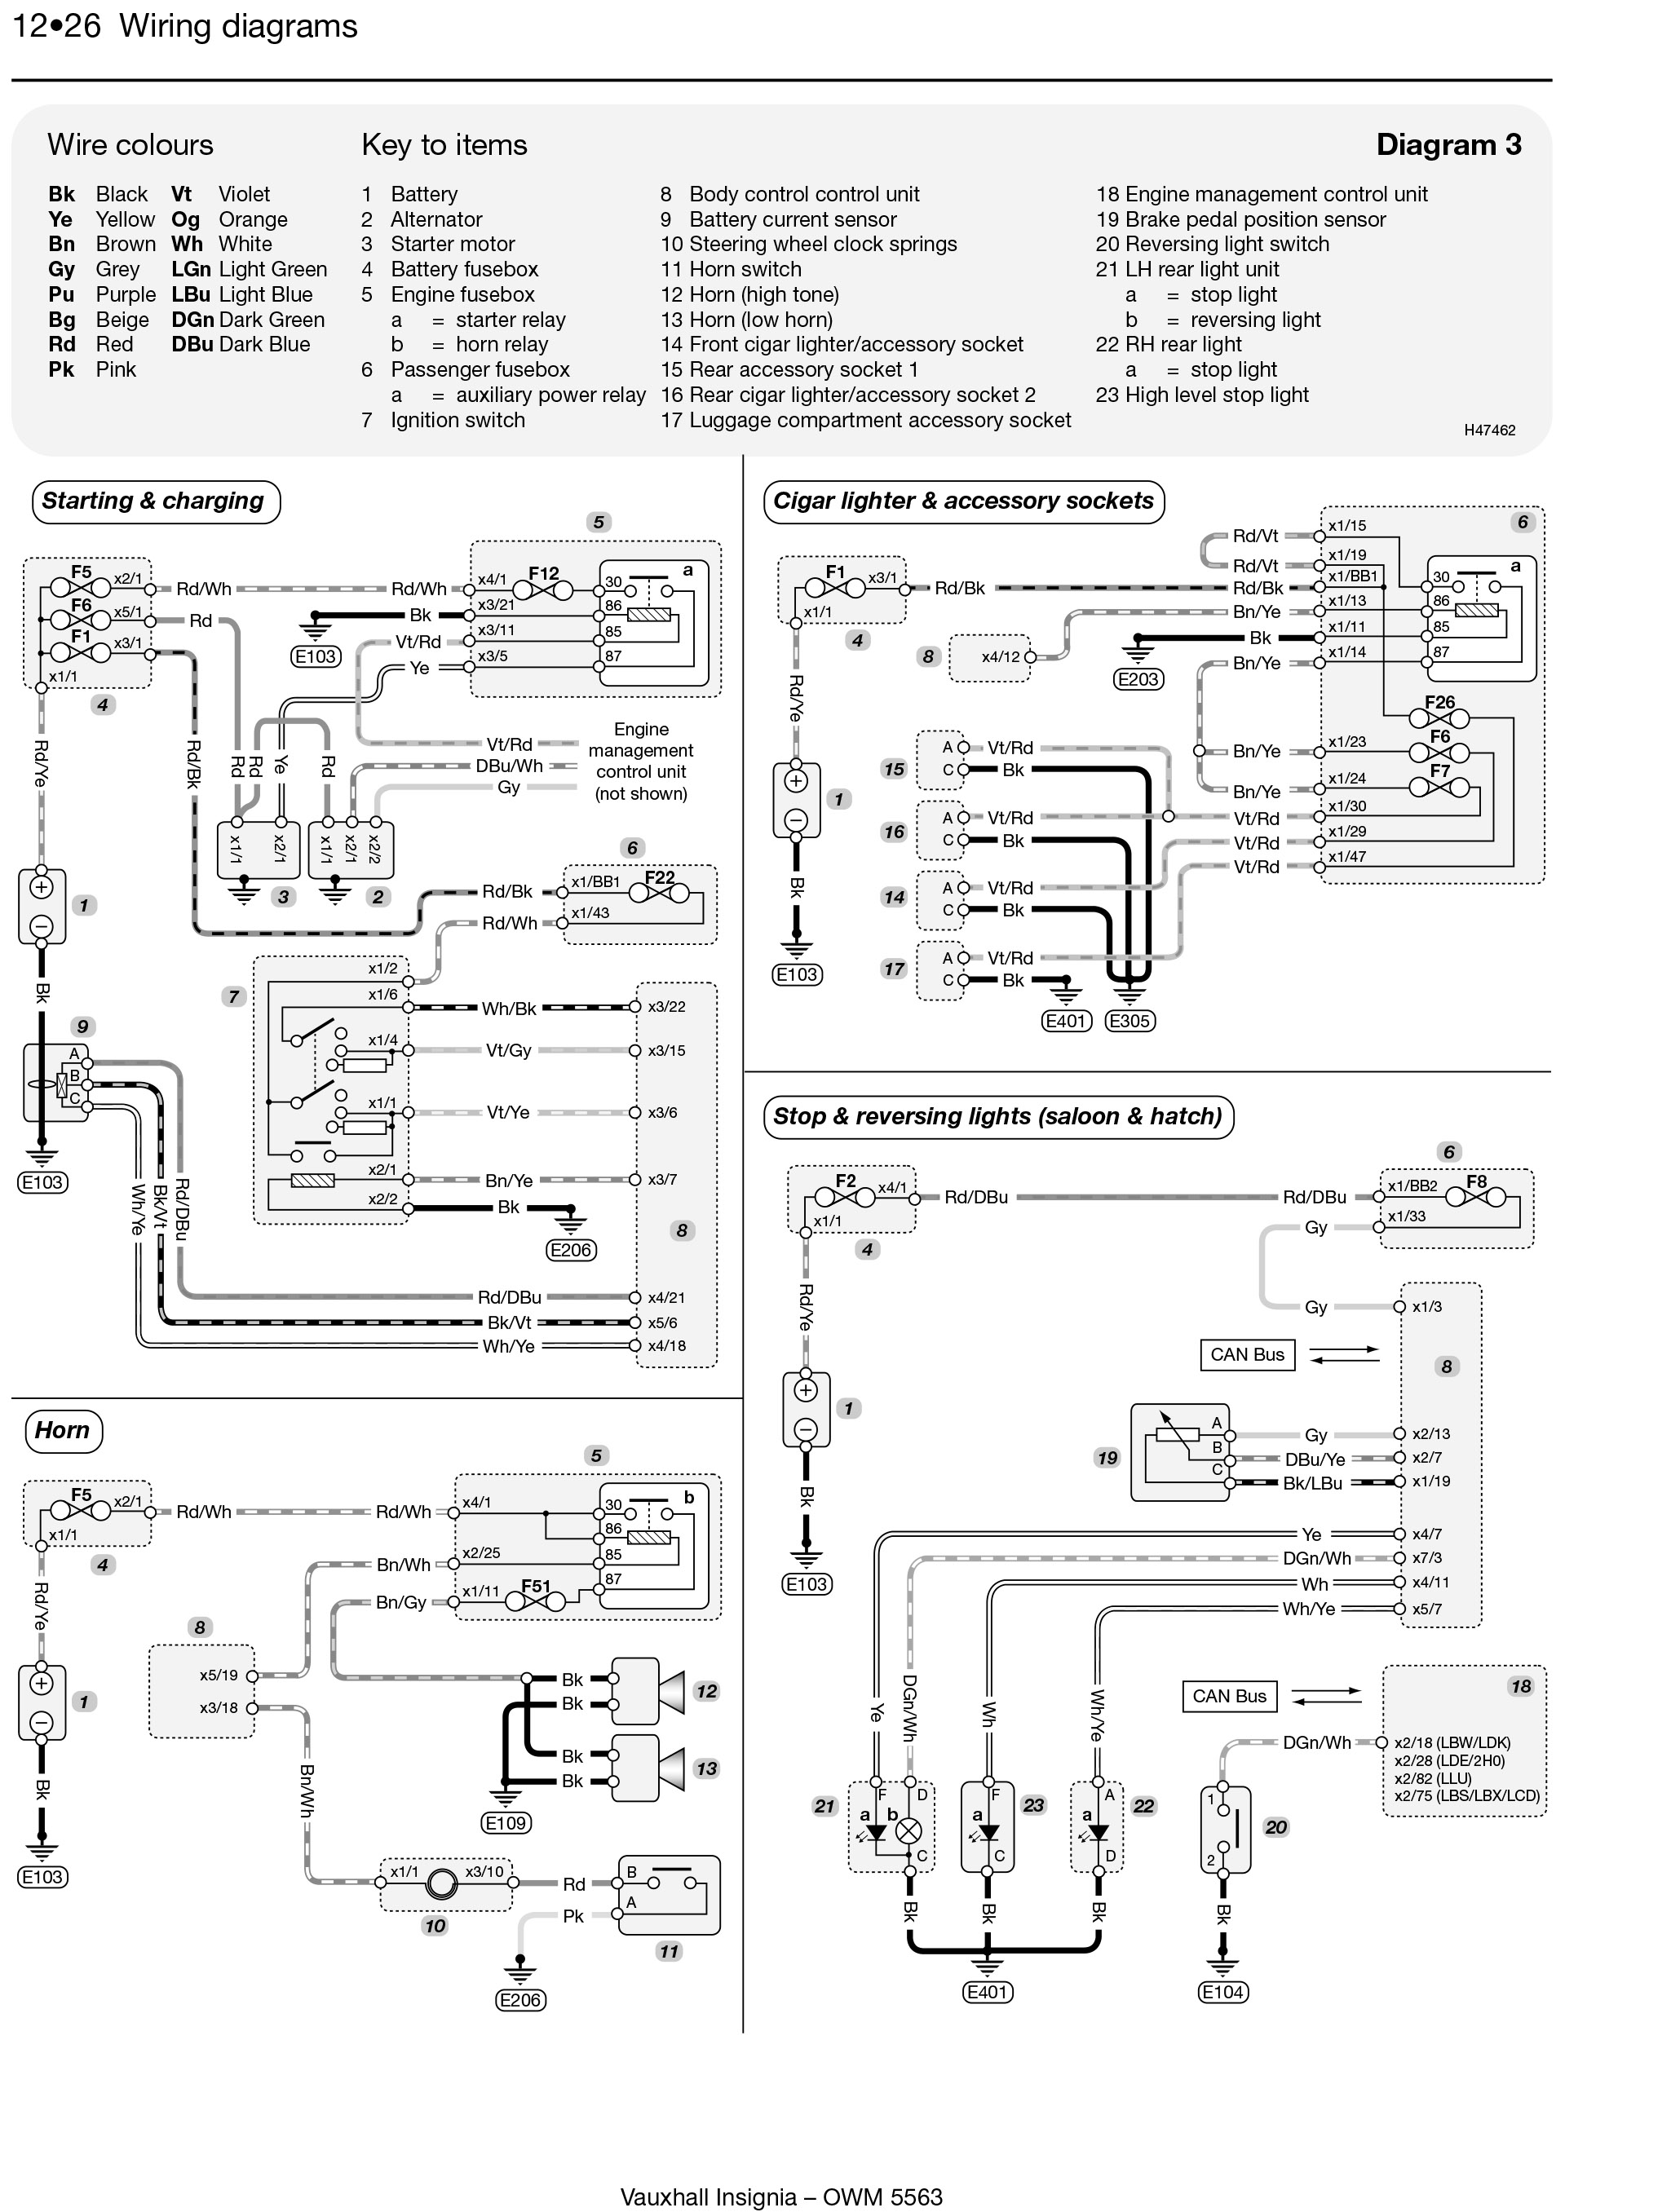 Haynes 5563 page 6 haynes wiring diagrams online wiring diagrams haynes wiring diagram at bayanpartner.co